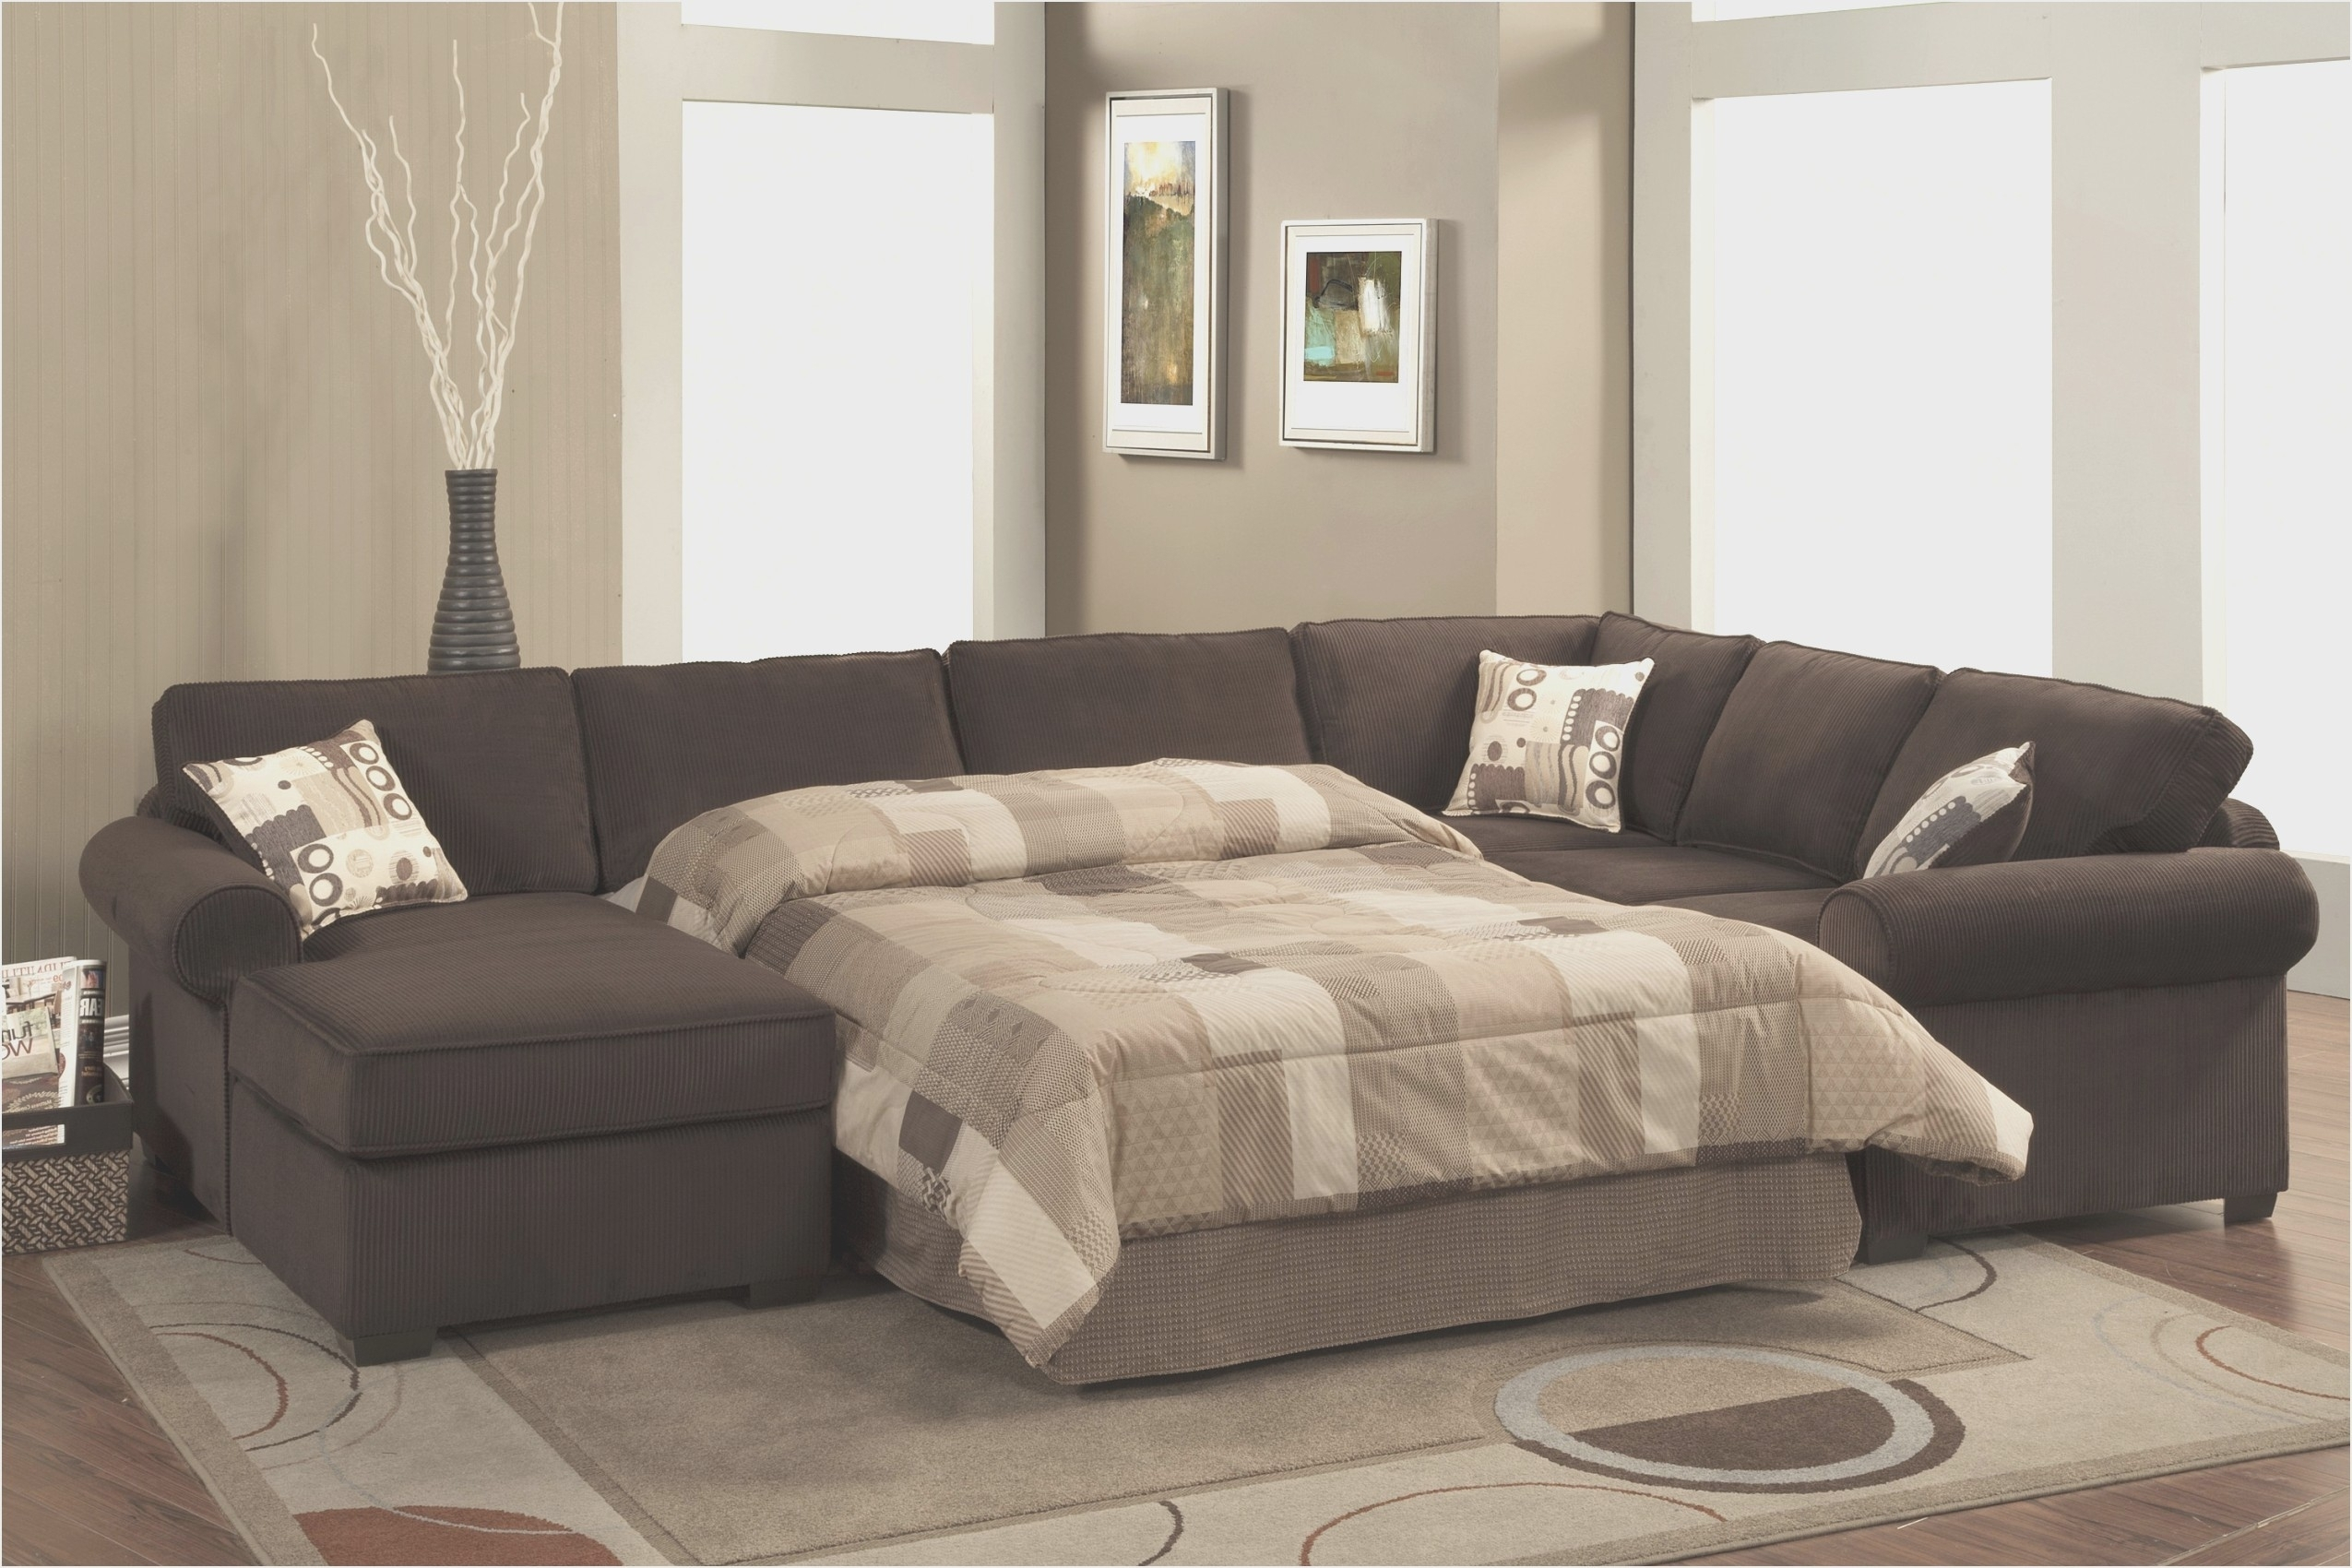 Sofas For Bedroom | Home Decor & Furnitures Throughout Bedroom Sofas (Image 9 of 10)